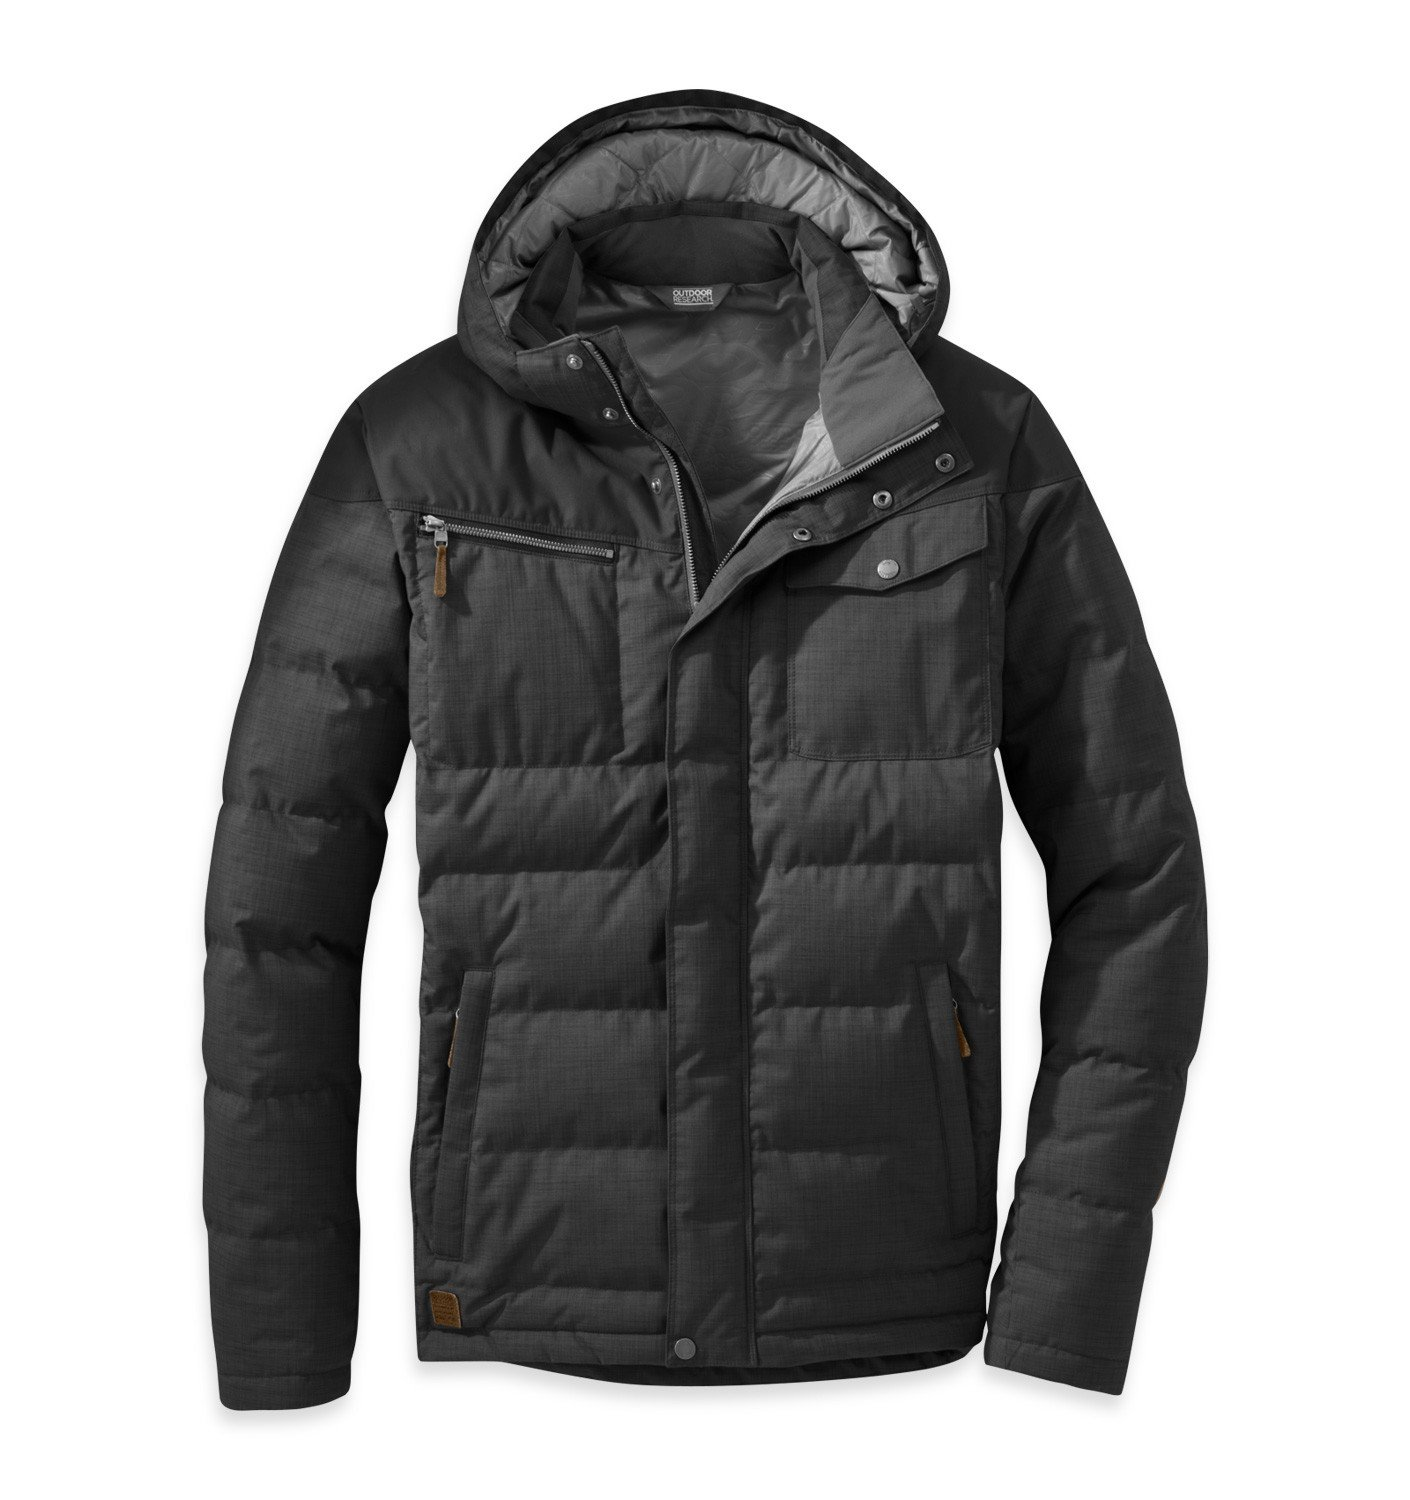 897533f5d75 Amazon.com  Outdoor Research Men s Whitefish Down Jacket  Sports   Outdoors